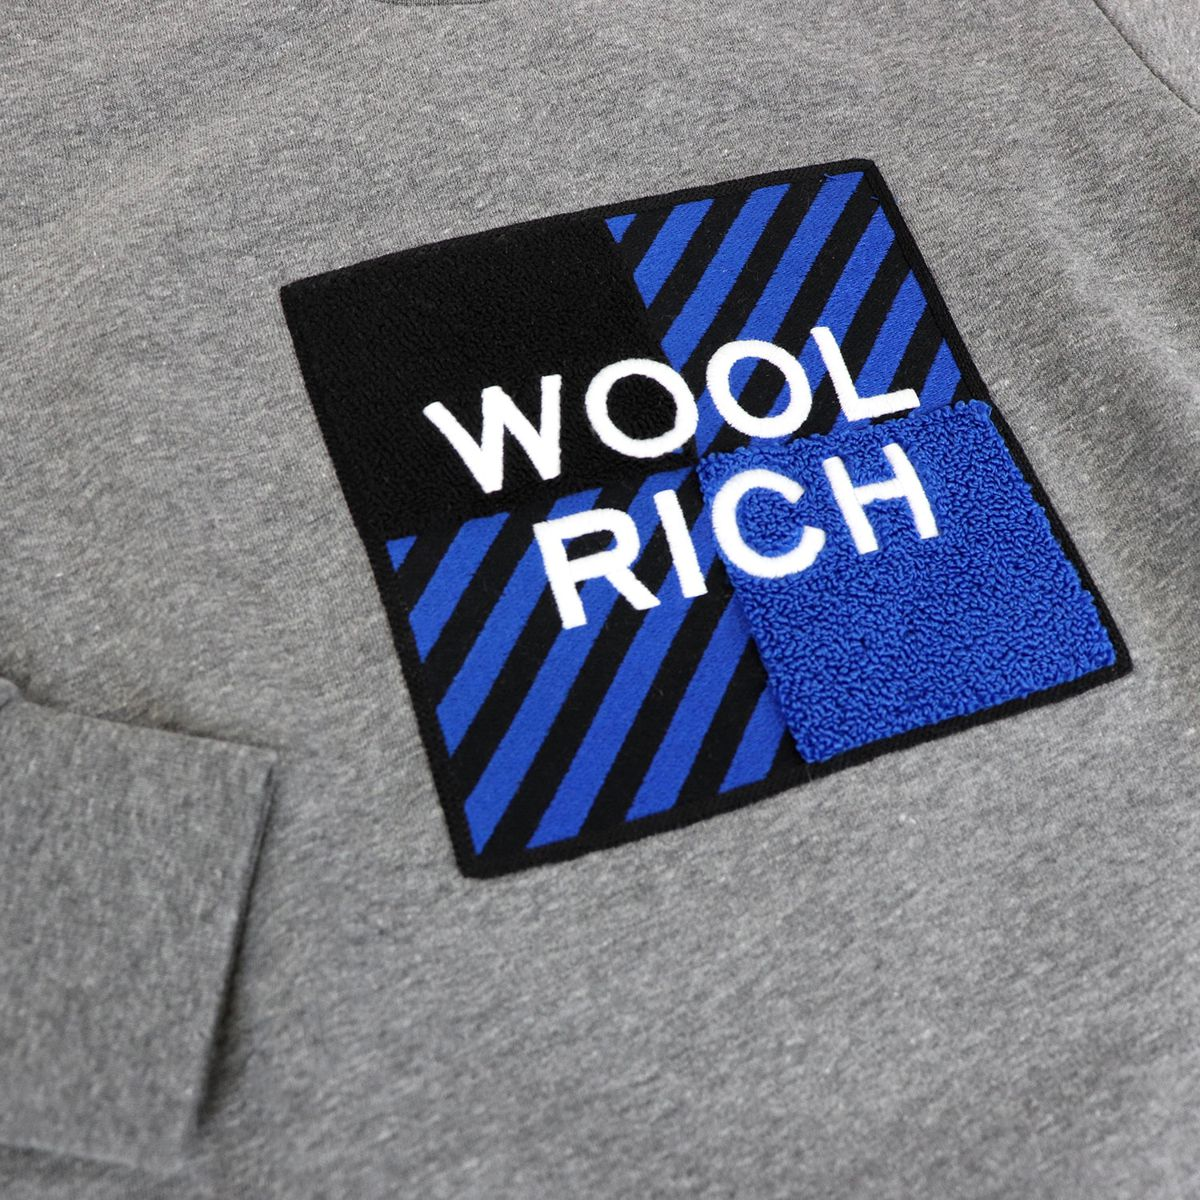 Crewneck sweatshirt with large embroidered logo Grey Woolrich